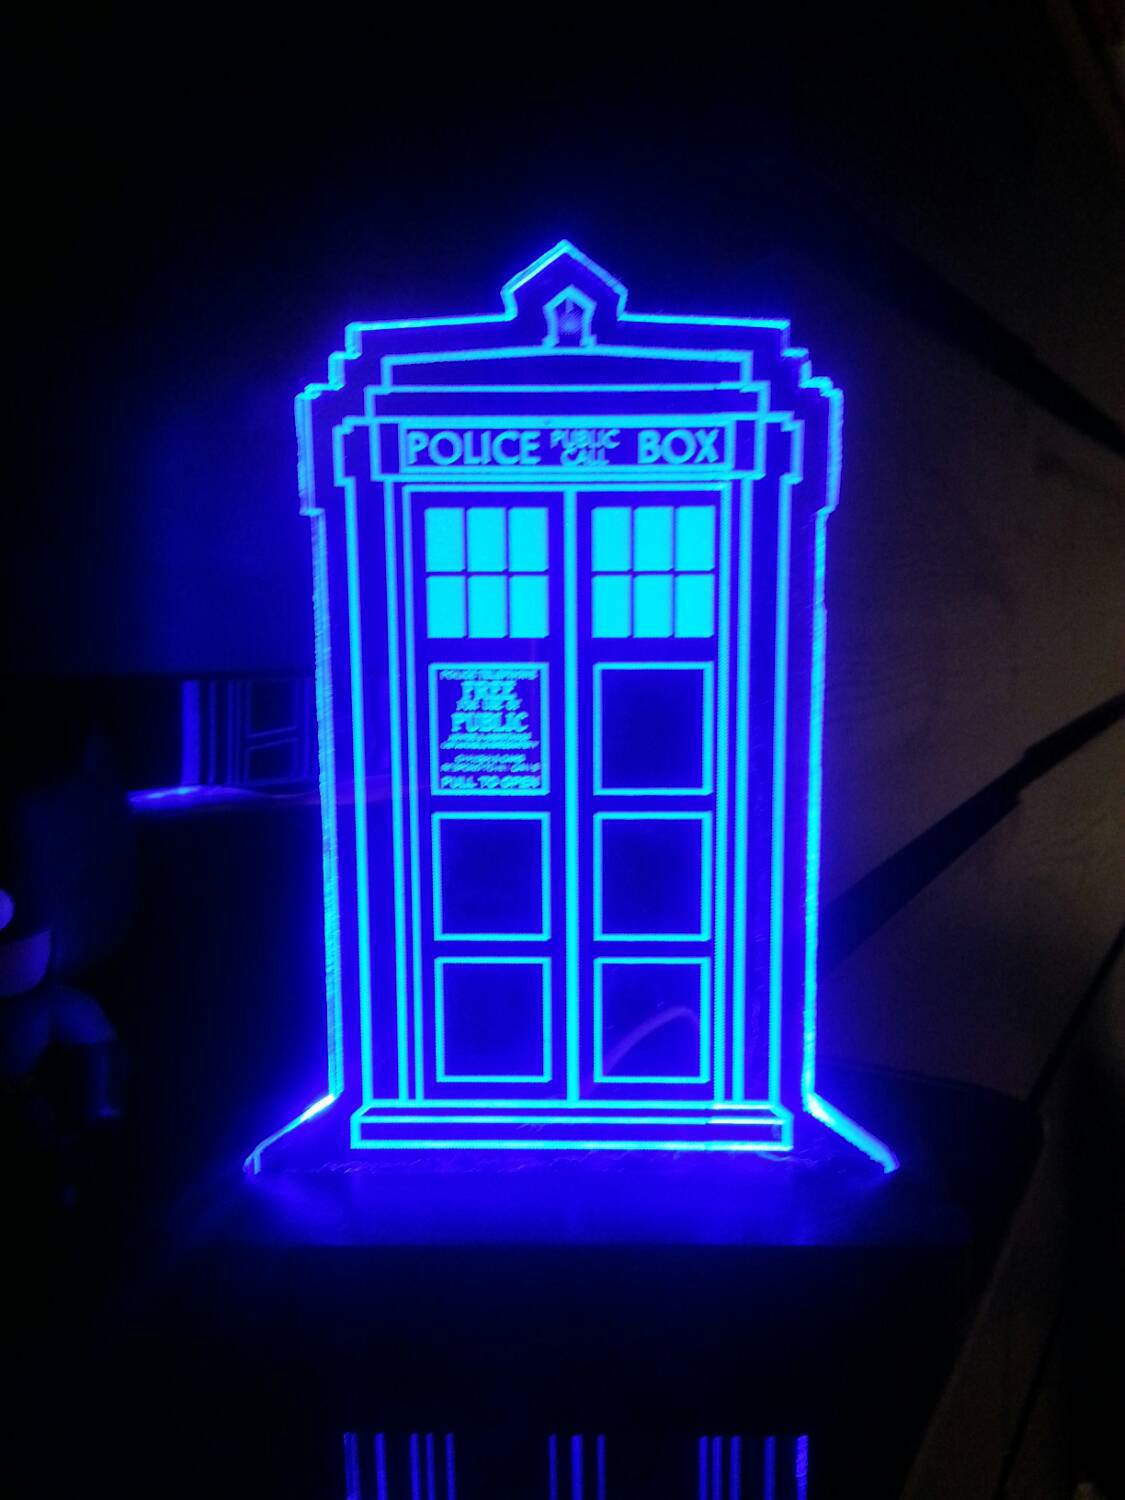 The Doctor Who TARDIS Acrylic Display Sign is available for $36.99 at HeroLightsu0027 Etsy store. & Doctor Who TARDIS Acrylic Display Sign